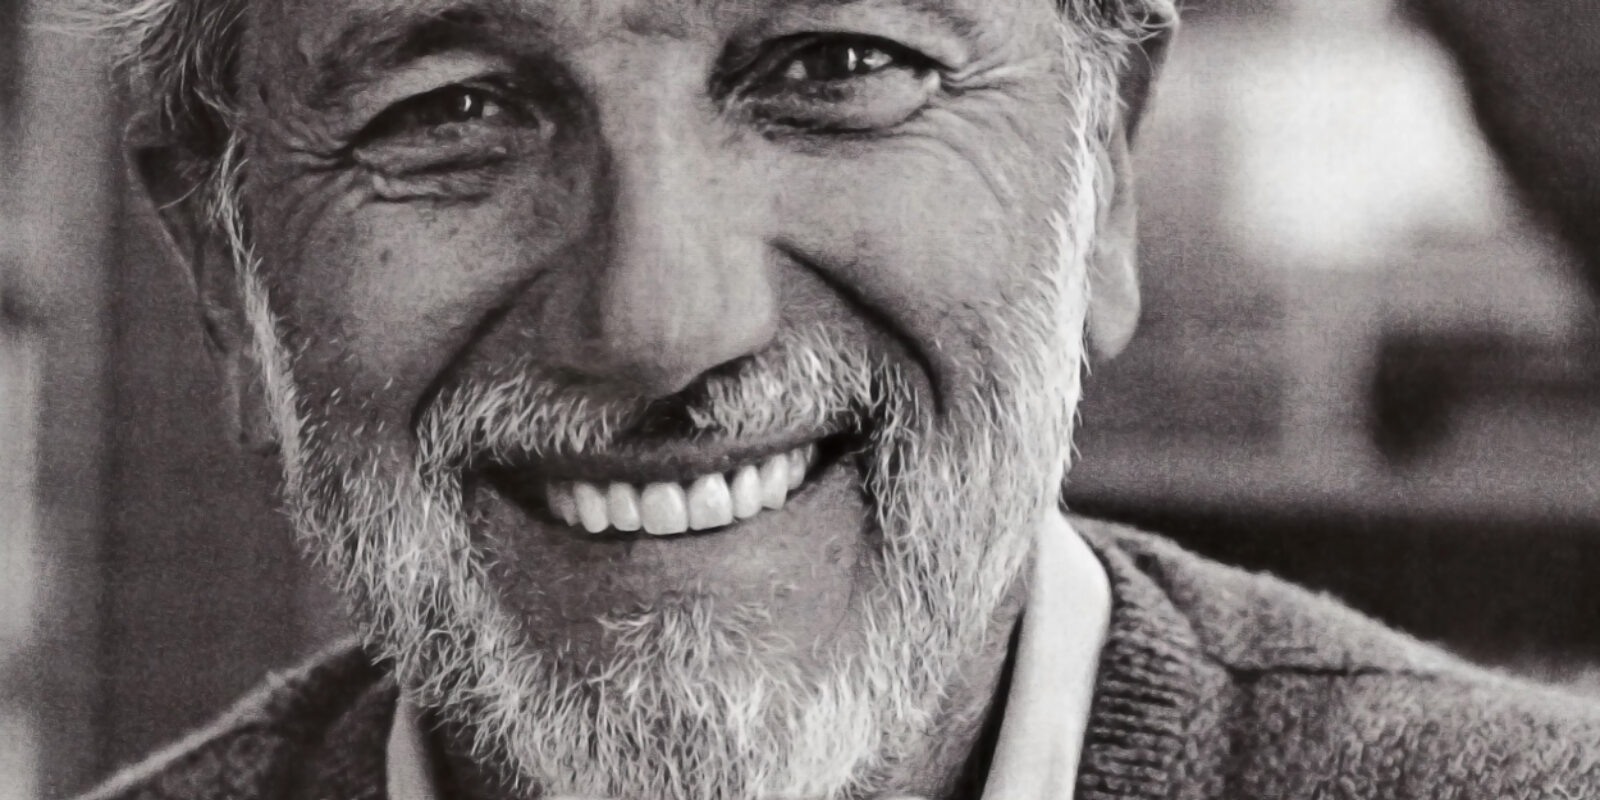 A black and white self-portrait by Renzo Piano